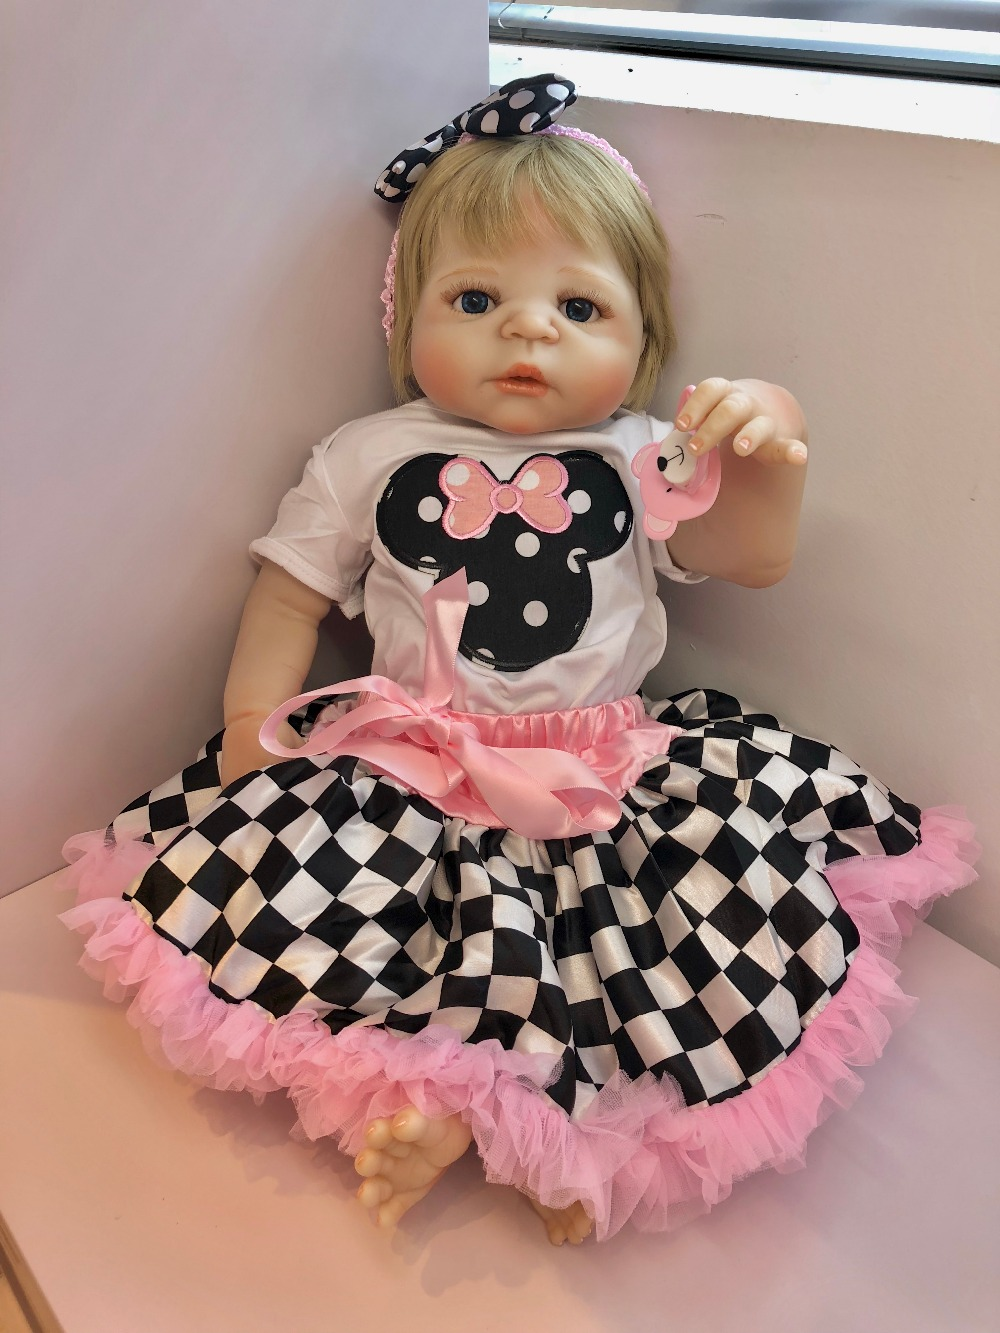 NPKCOLLECTION Reborn Doll Full Vinyl Babies Dolls For Girls 57CM Realistic Soft Alive Reborn Baby Doll